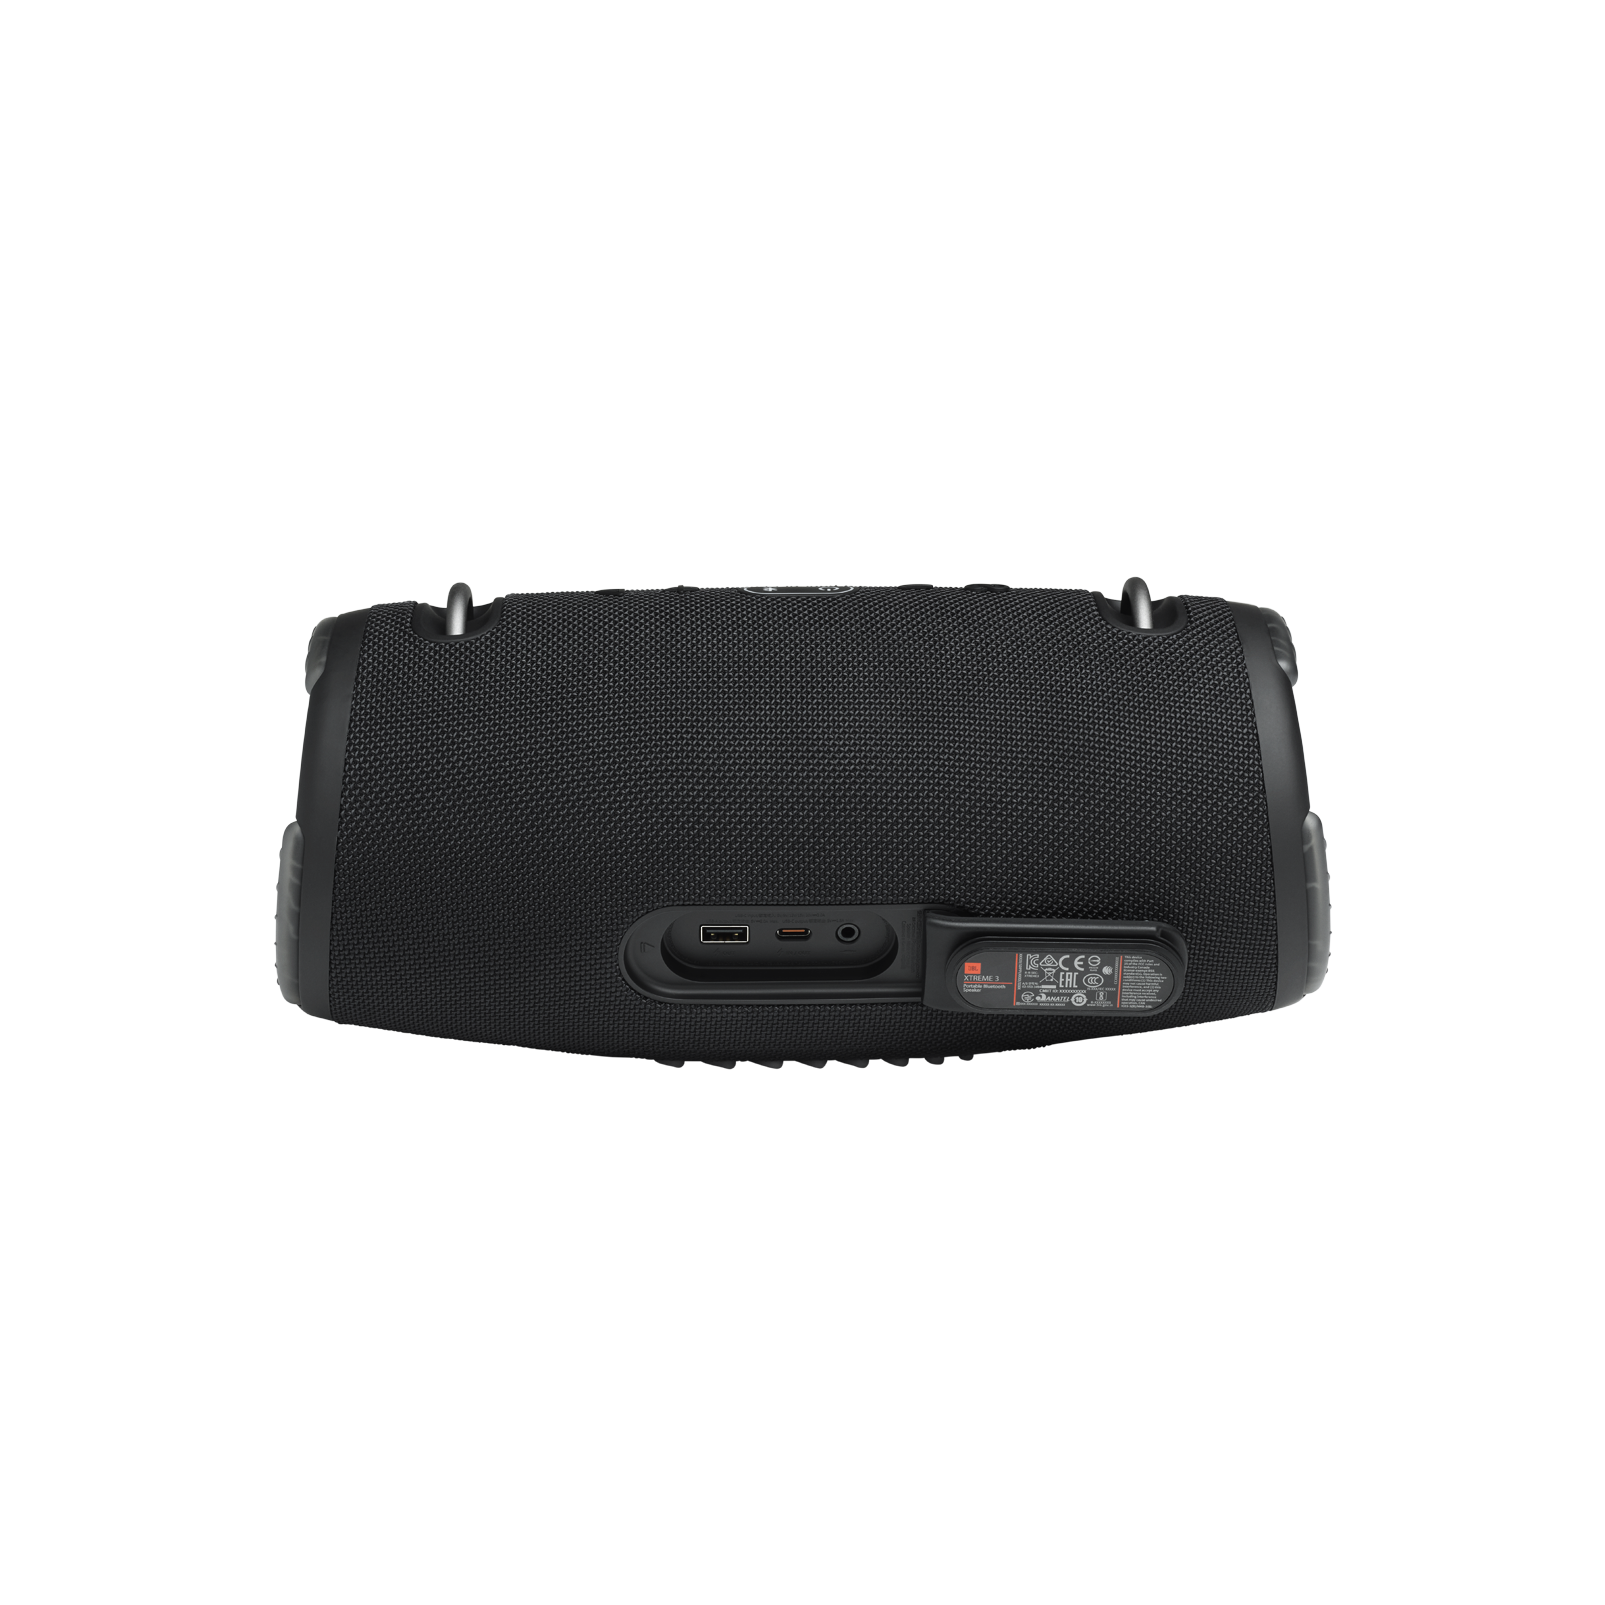 JBL Xtreme 3 - Black - Portable waterproof speaker - Detailshot 3